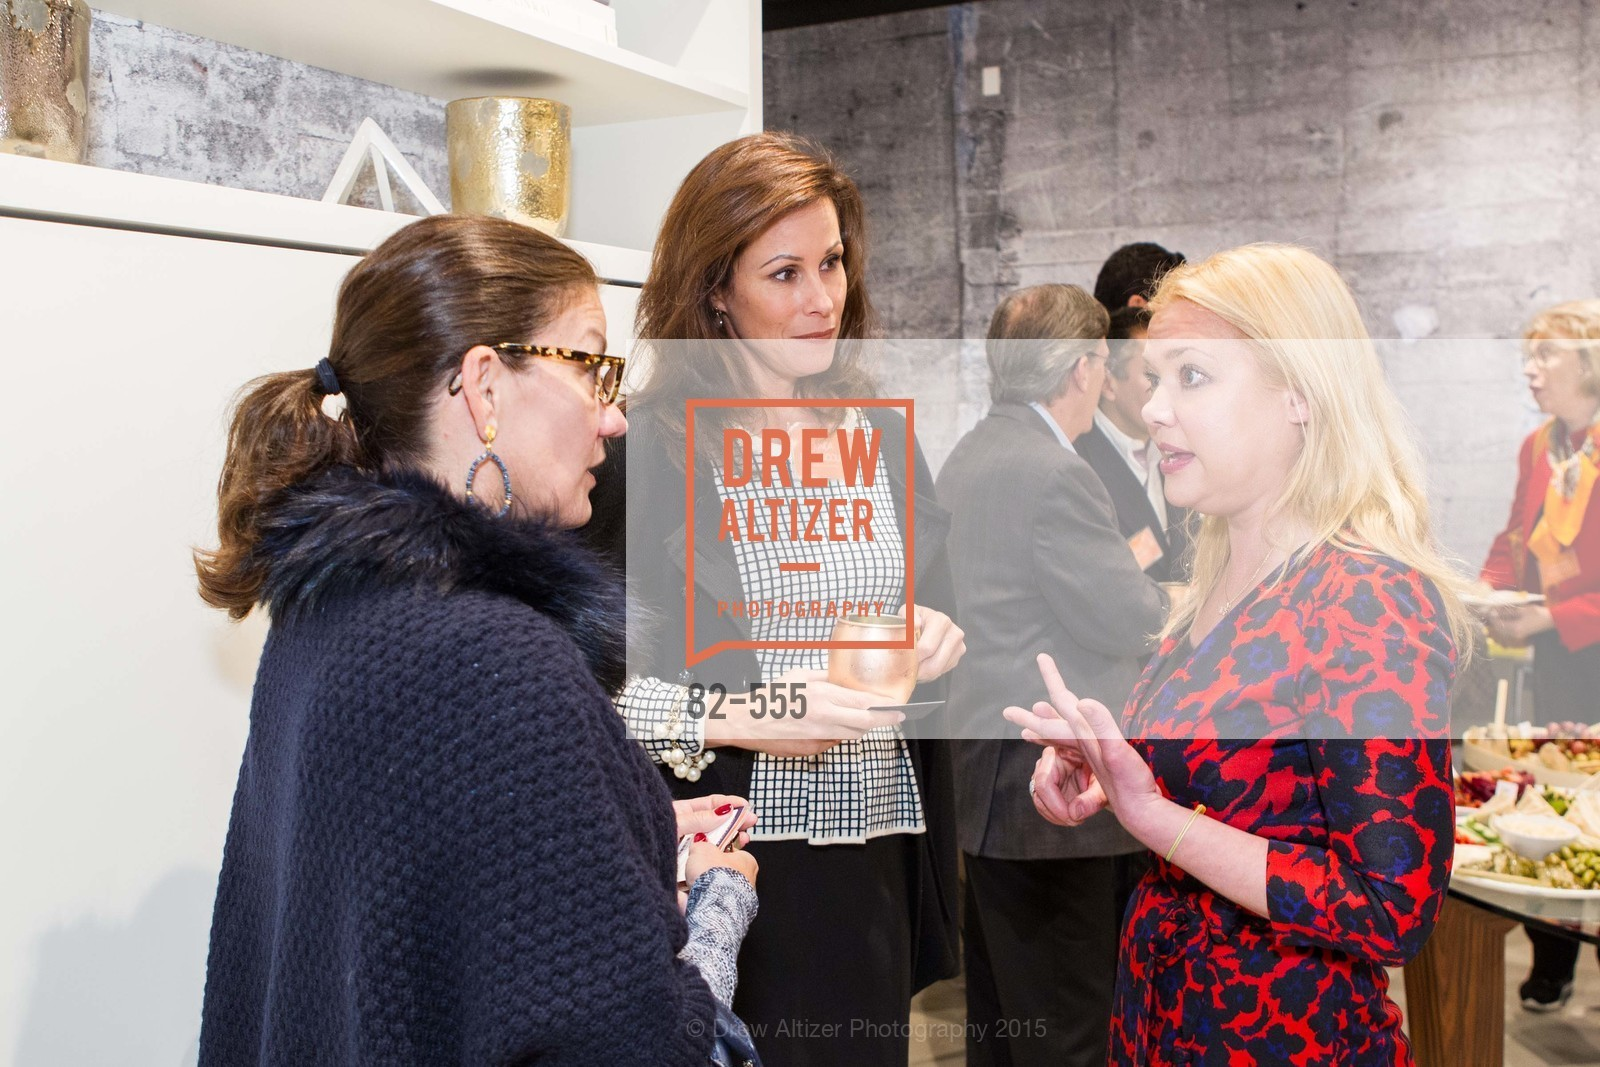 Linda Bettencourt, Eva Eastman, SFC&G Real Estate Survey Reveal, Resource Furniture, November 19th, 2015,Drew Altizer, Drew Altizer Photography, full-service agency, private events, San Francisco photographer, photographer california